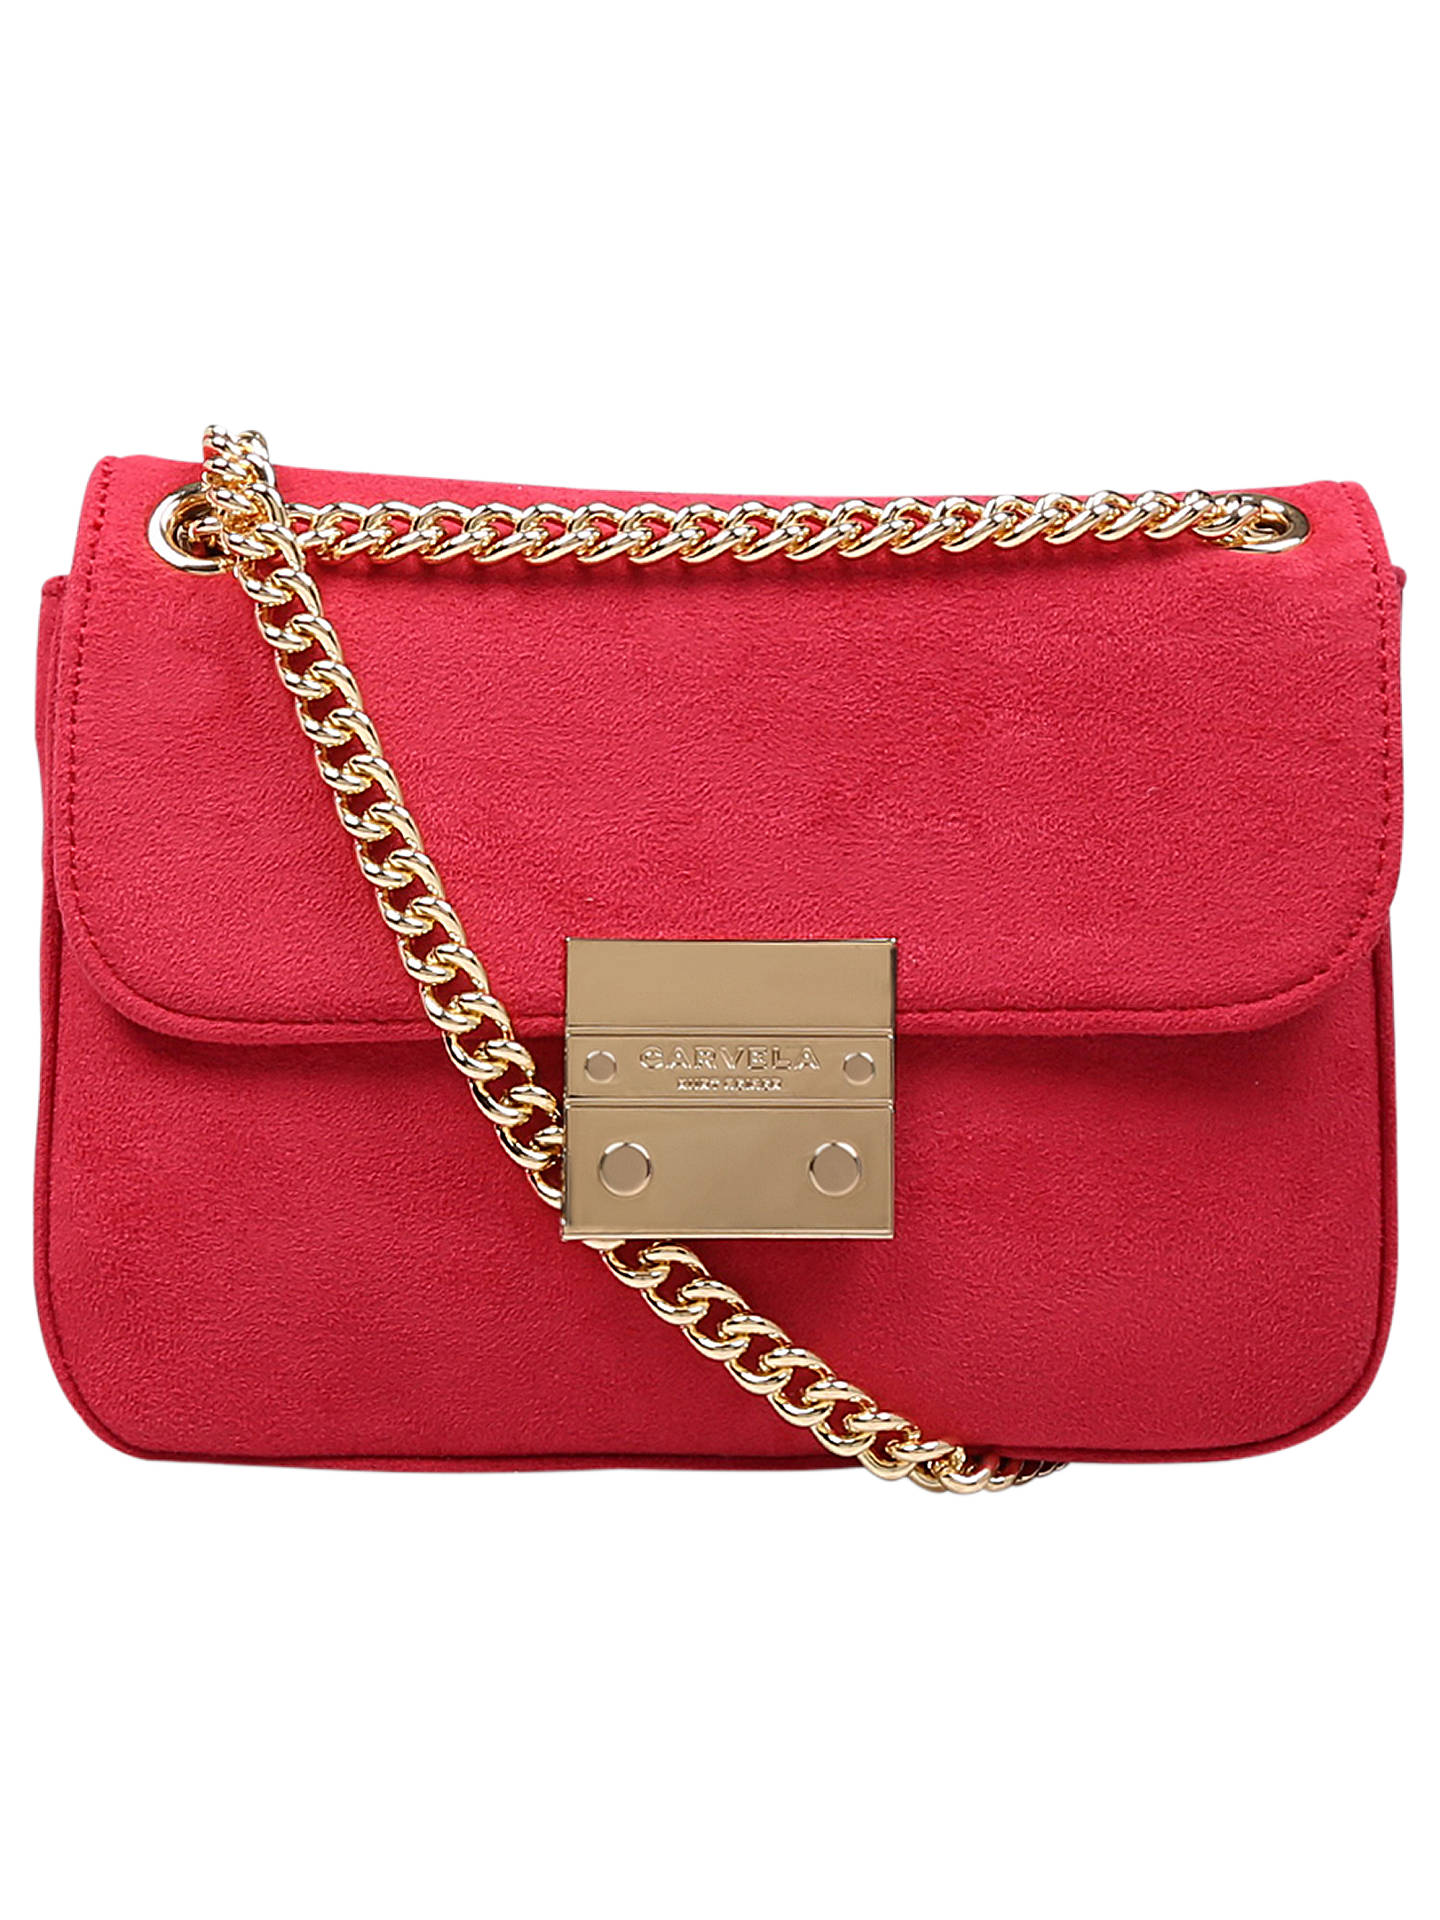 BuyCarvela Grappa Clutch Bag, Pink Online at johnlewis.com